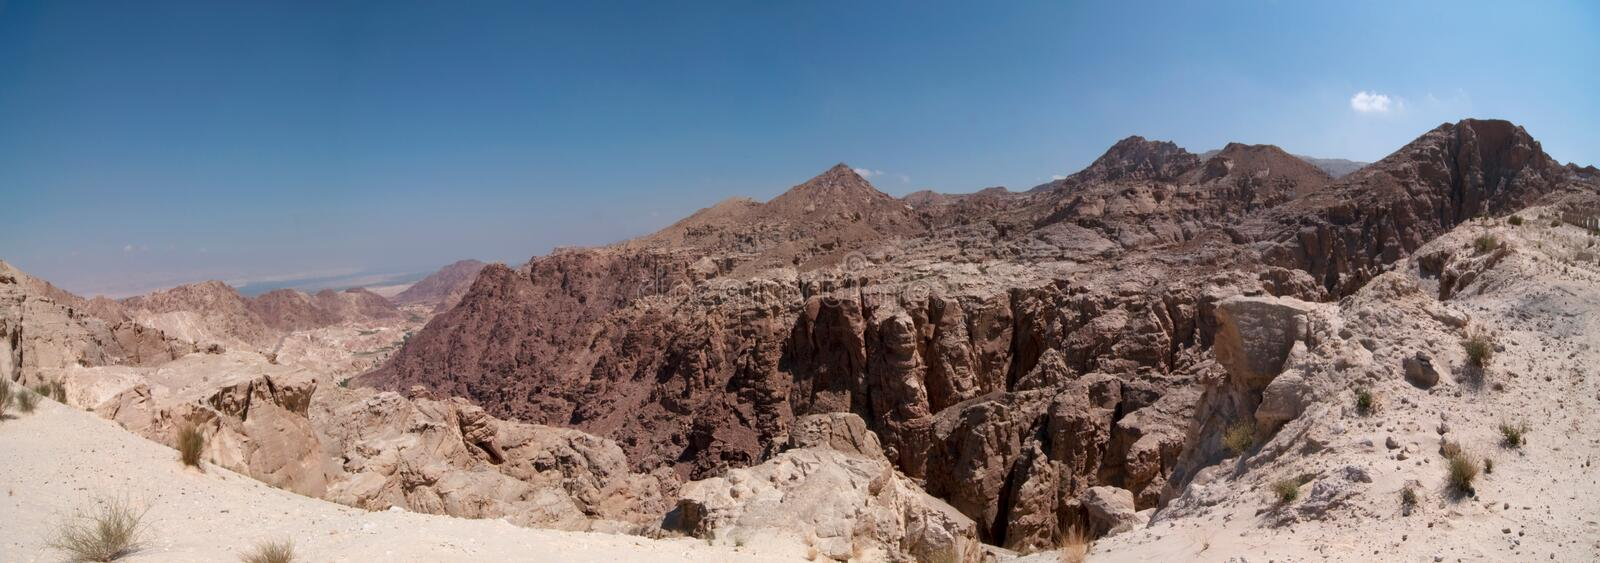 Download Desert hills at midday stock image. Image of east, holy - 12425789